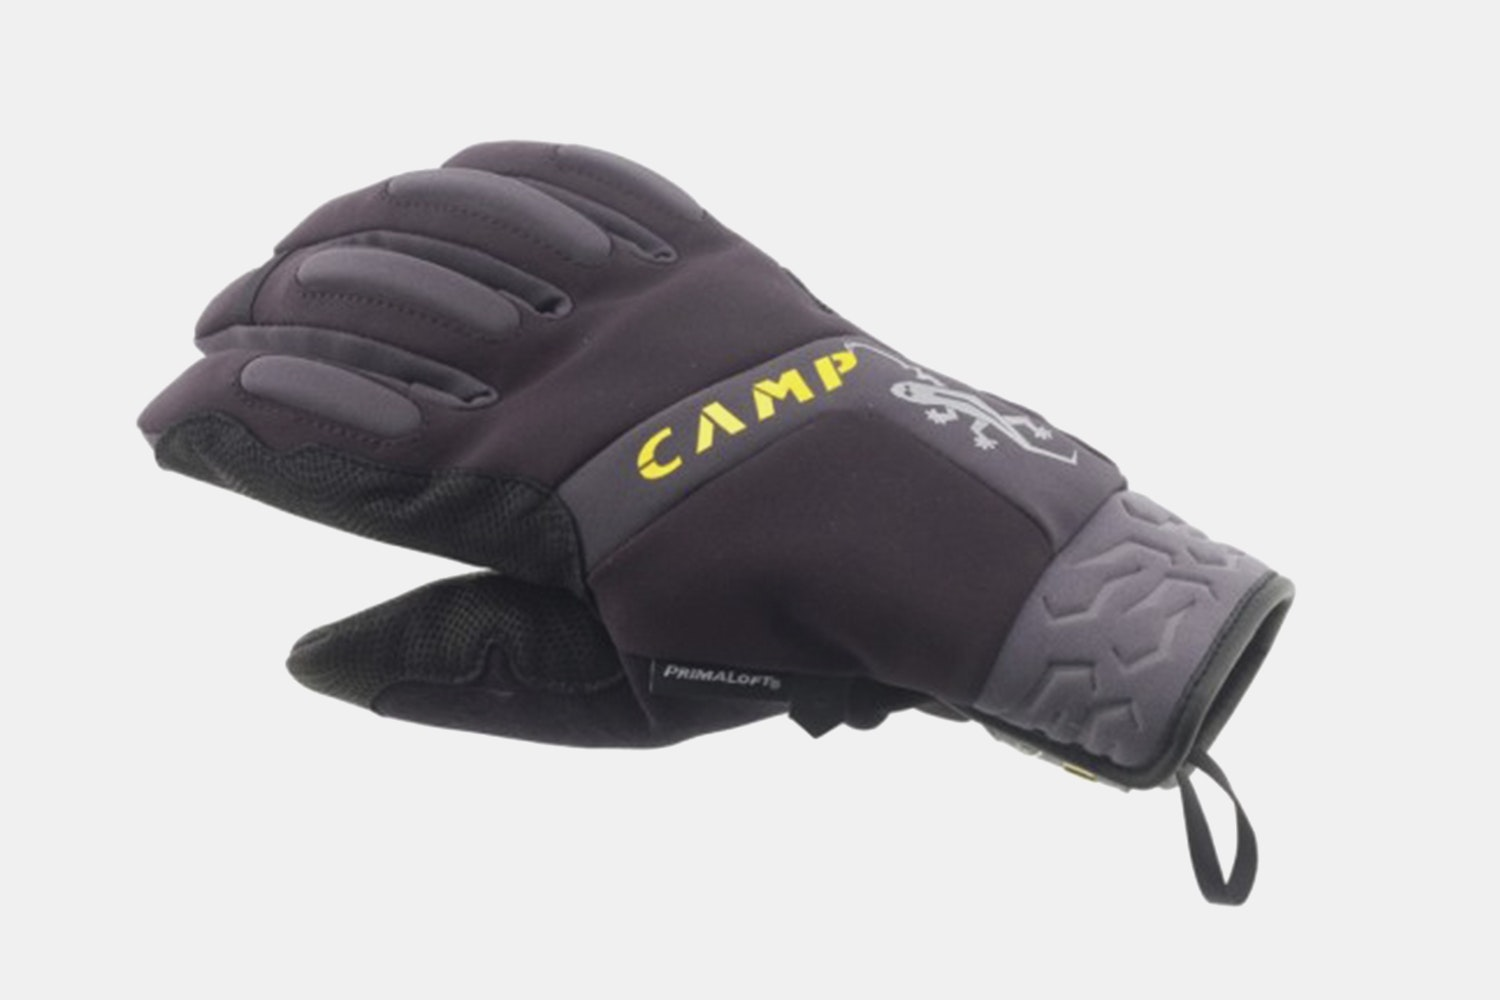 Geko Hot Gloves (+ $25)